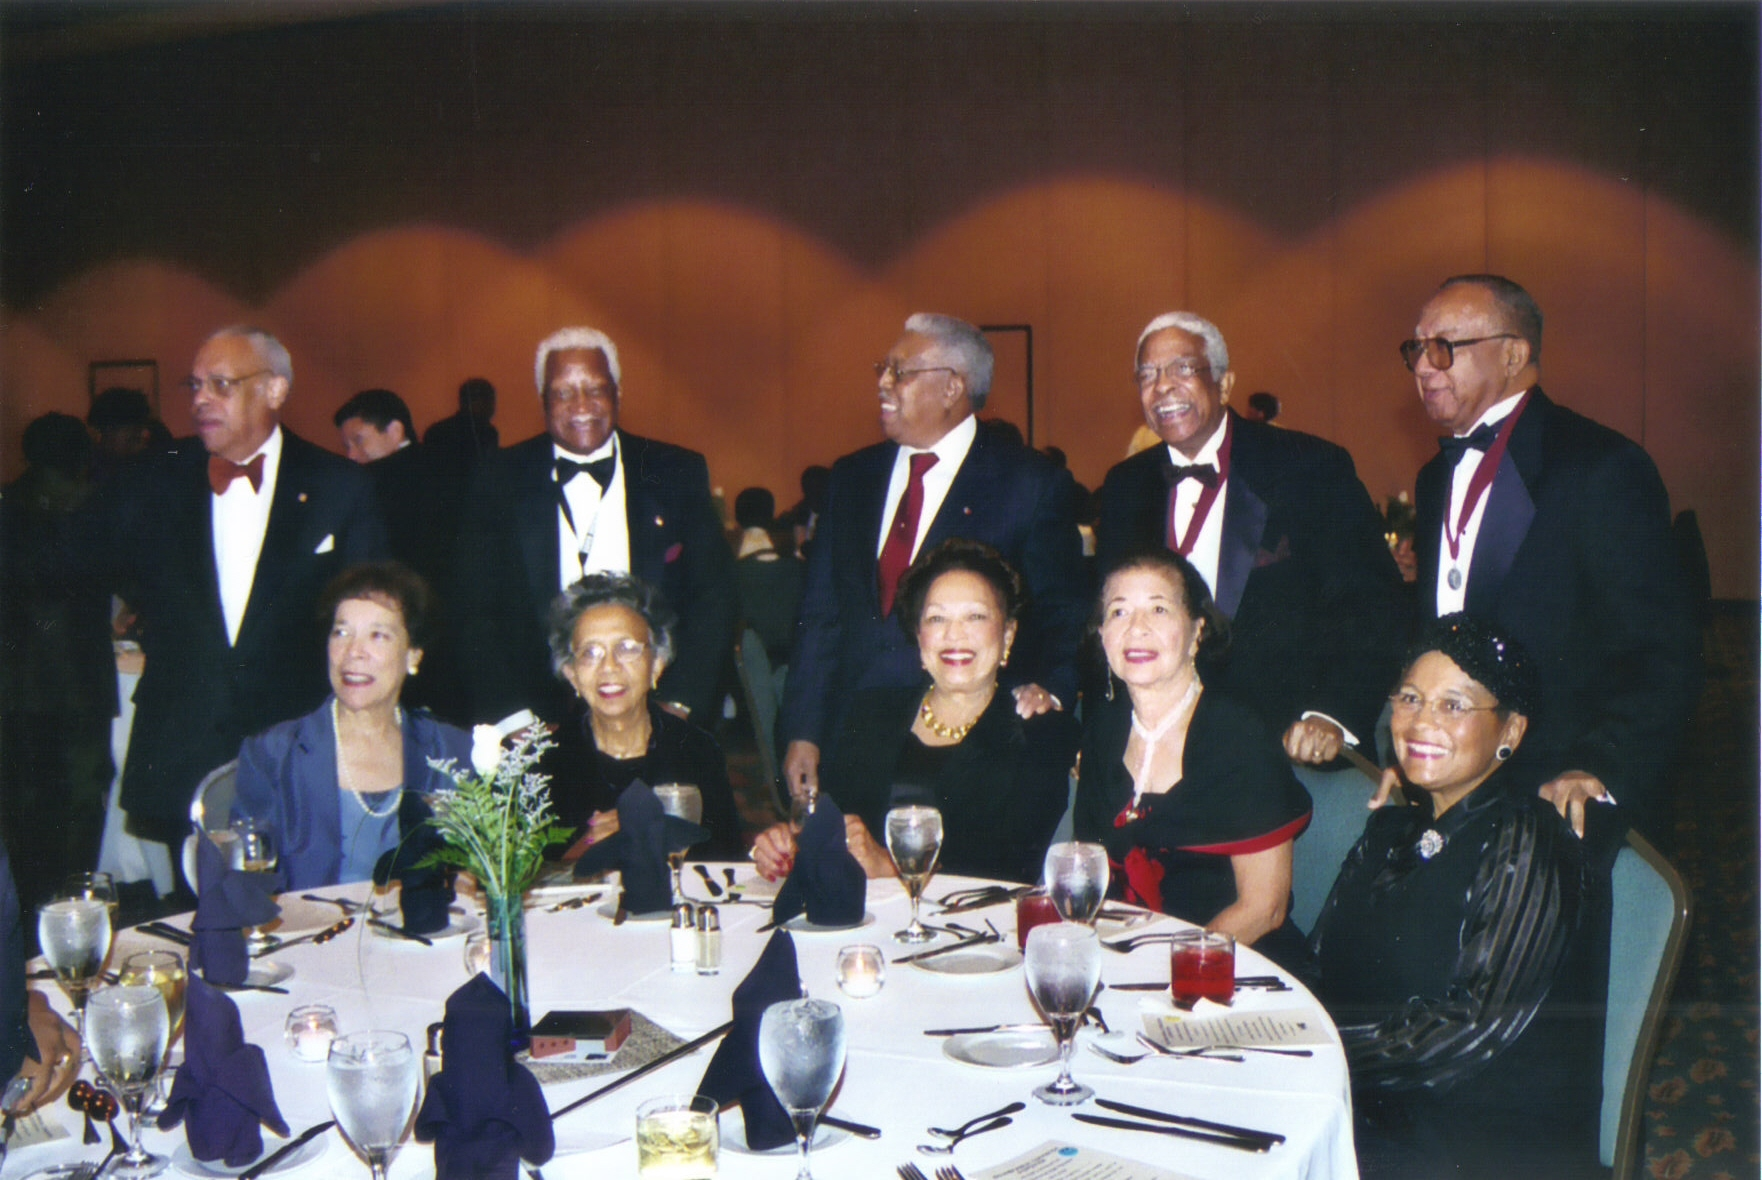 2003 AIA National Conference - [Left to Right] Jeh Johnson + Wife, Wendell + June Campbell, Mr. + Mrs. John Chase, Harold + Betty Williams, Mr. + Mrs. Horace Cantrell